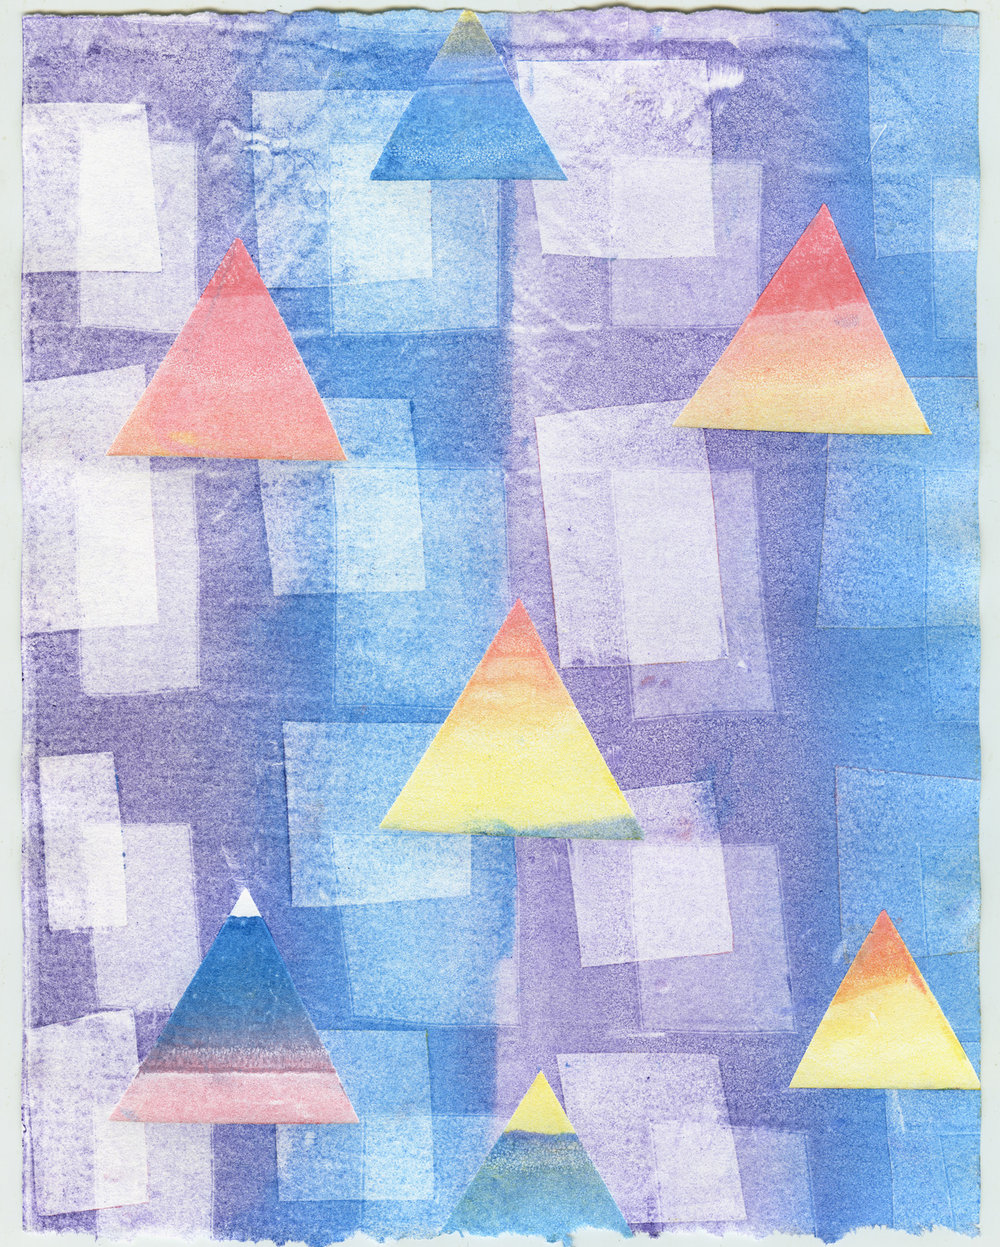 Untitled Triangles